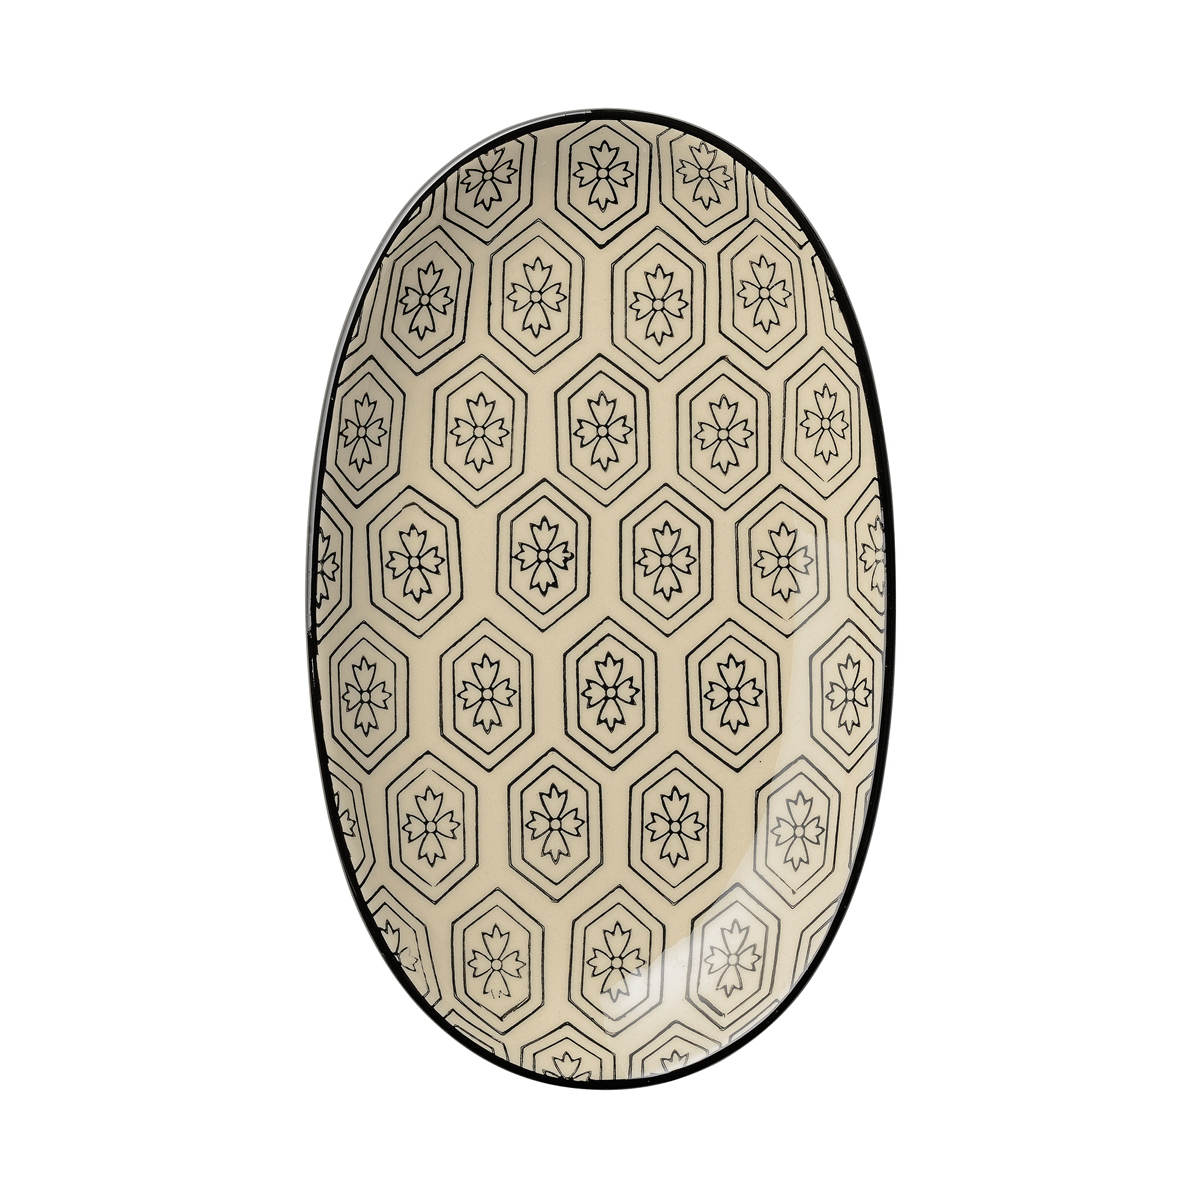 carlia-oval-plate-day-home-birger-et-mikkelsen